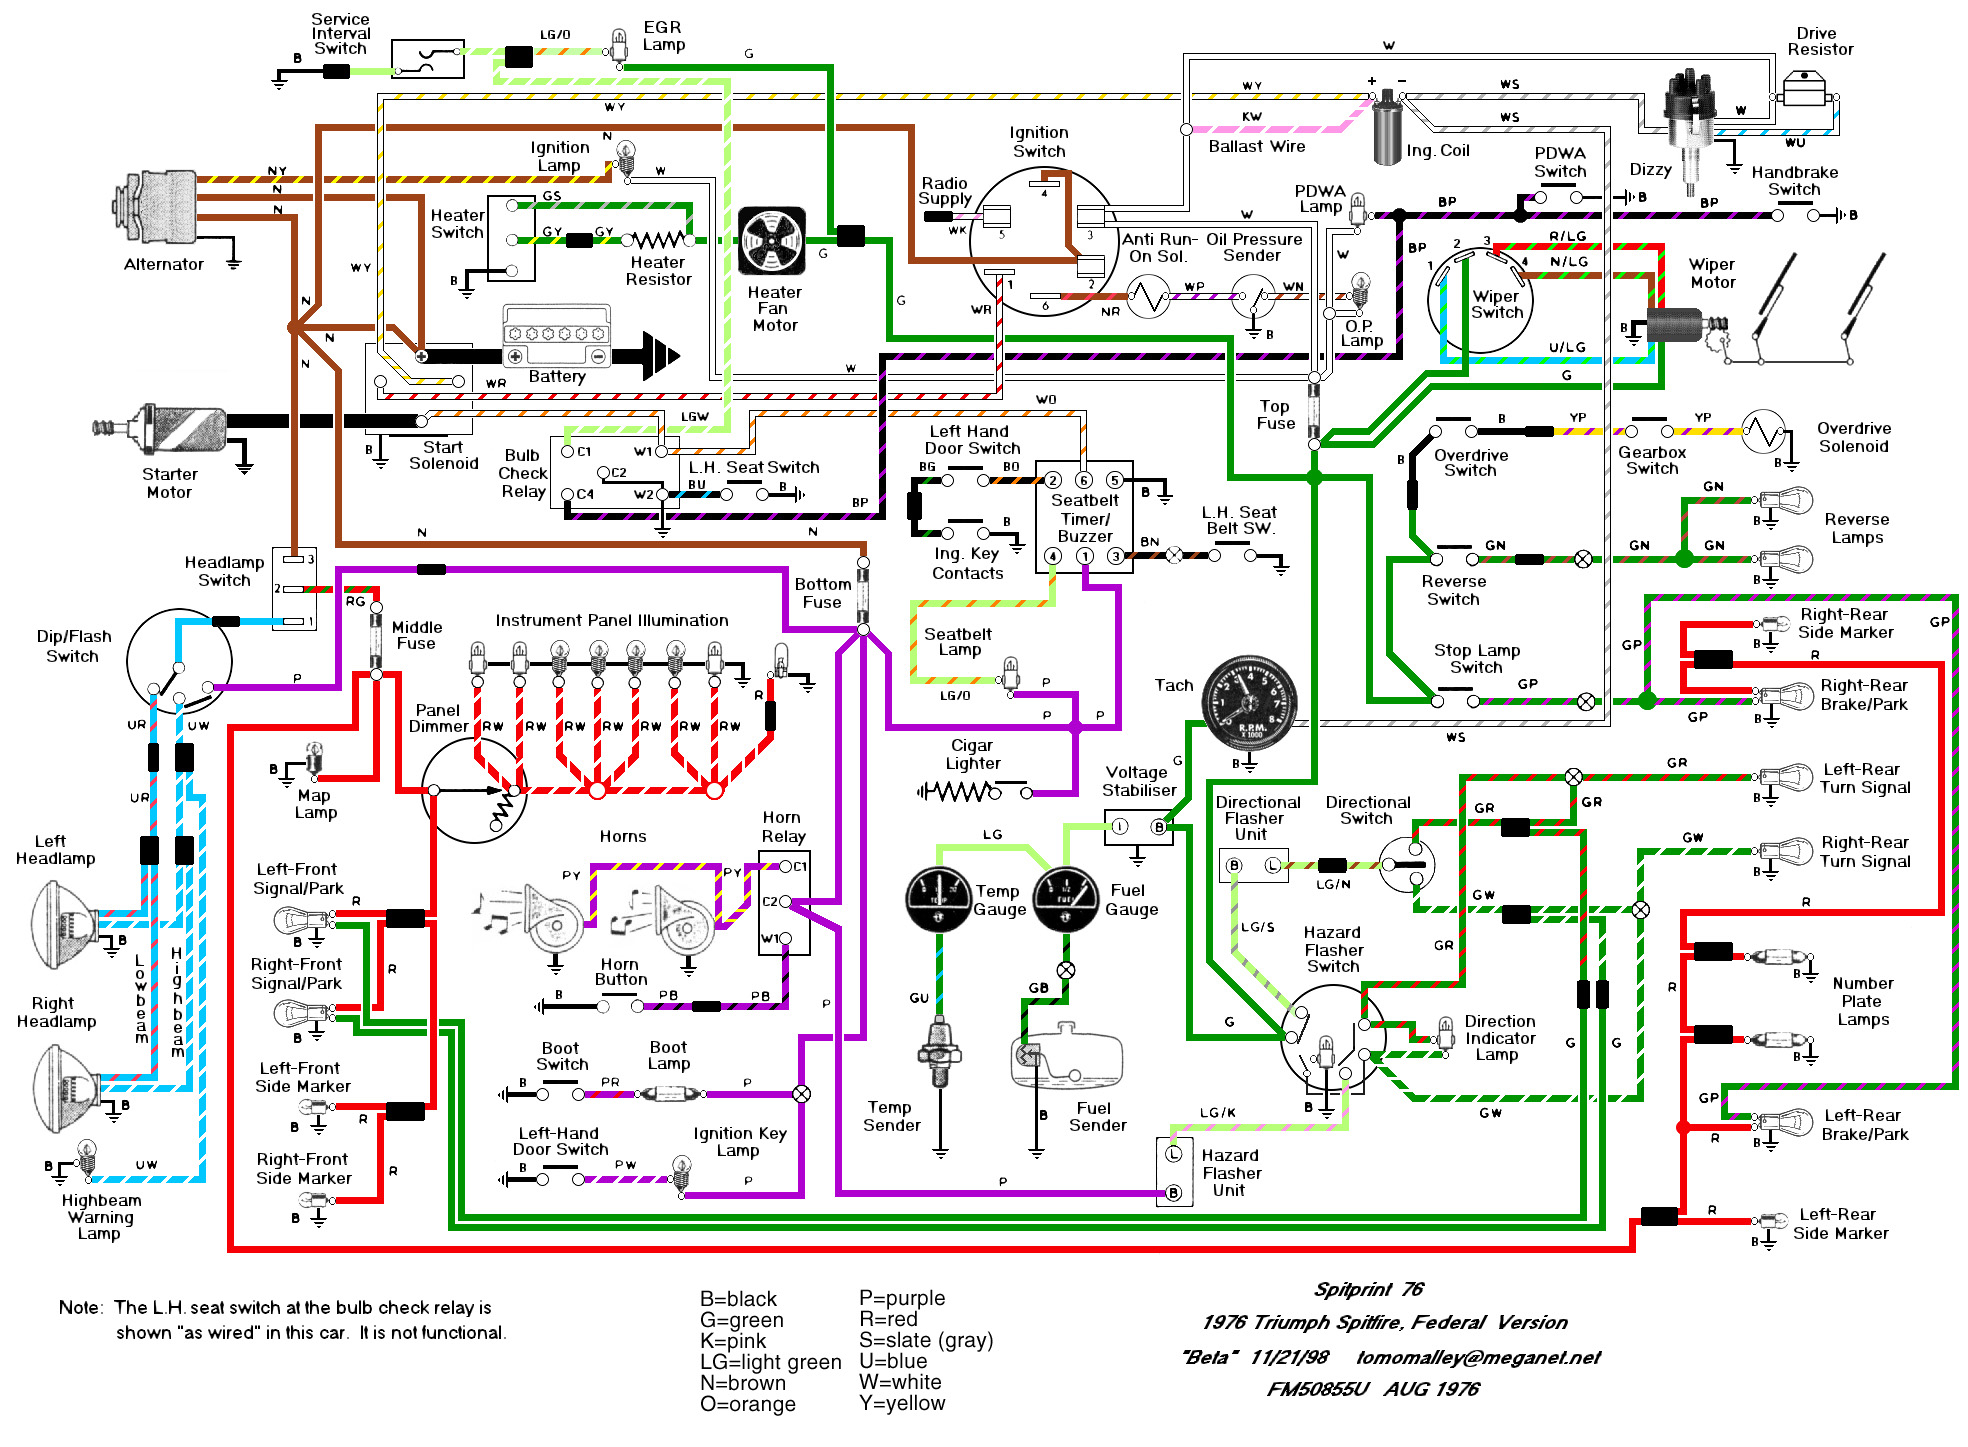 76diagram hd wiring diagram beats solo hd wiring diagram \u2022 wiring diagrams automotive wiring diagrams for dummies at honlapkeszites.co